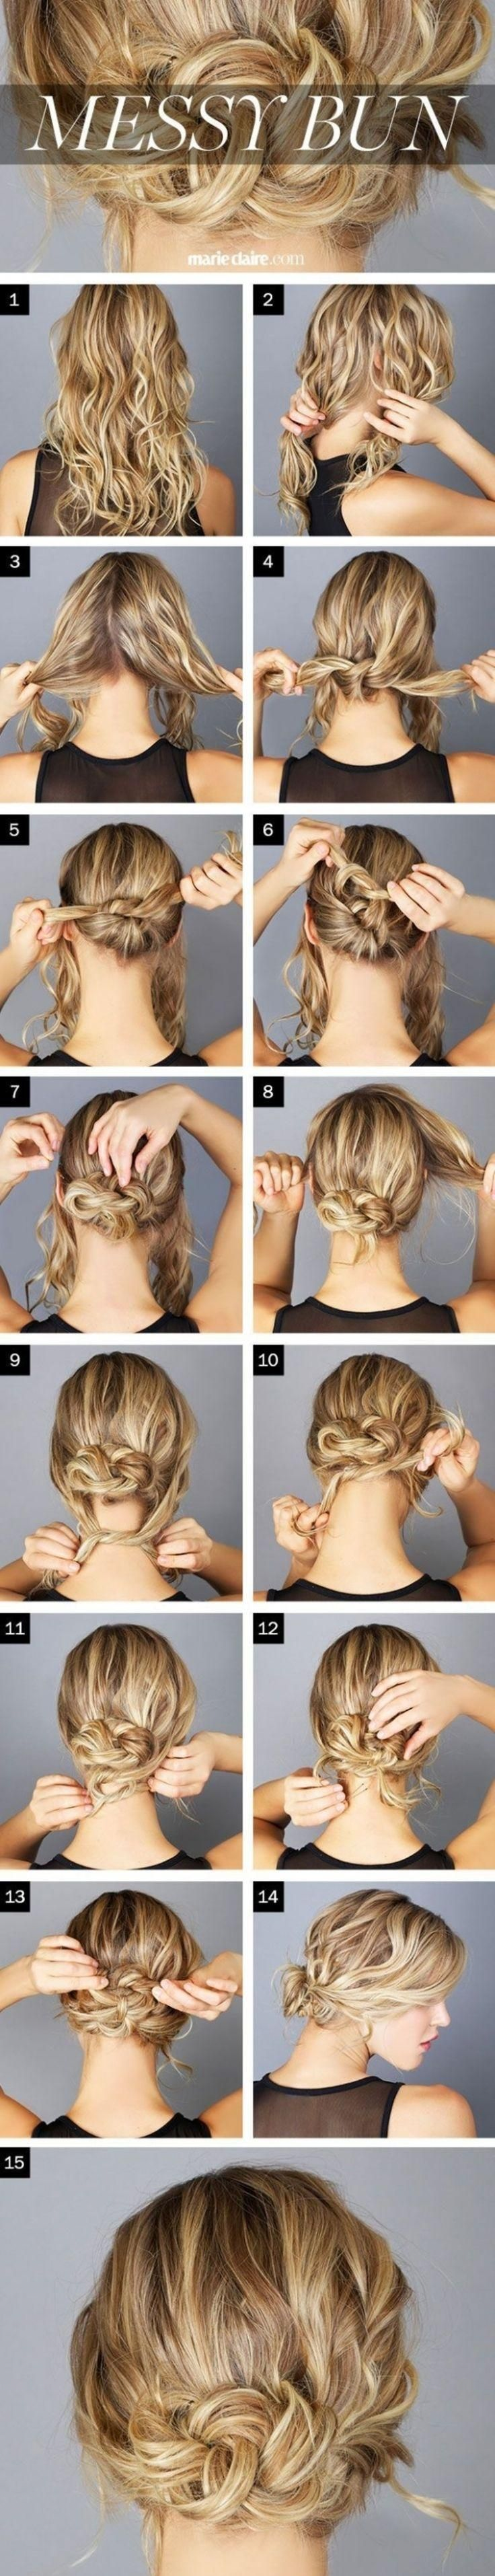 best Tease or tame images on Pinterest Make up looks Hair